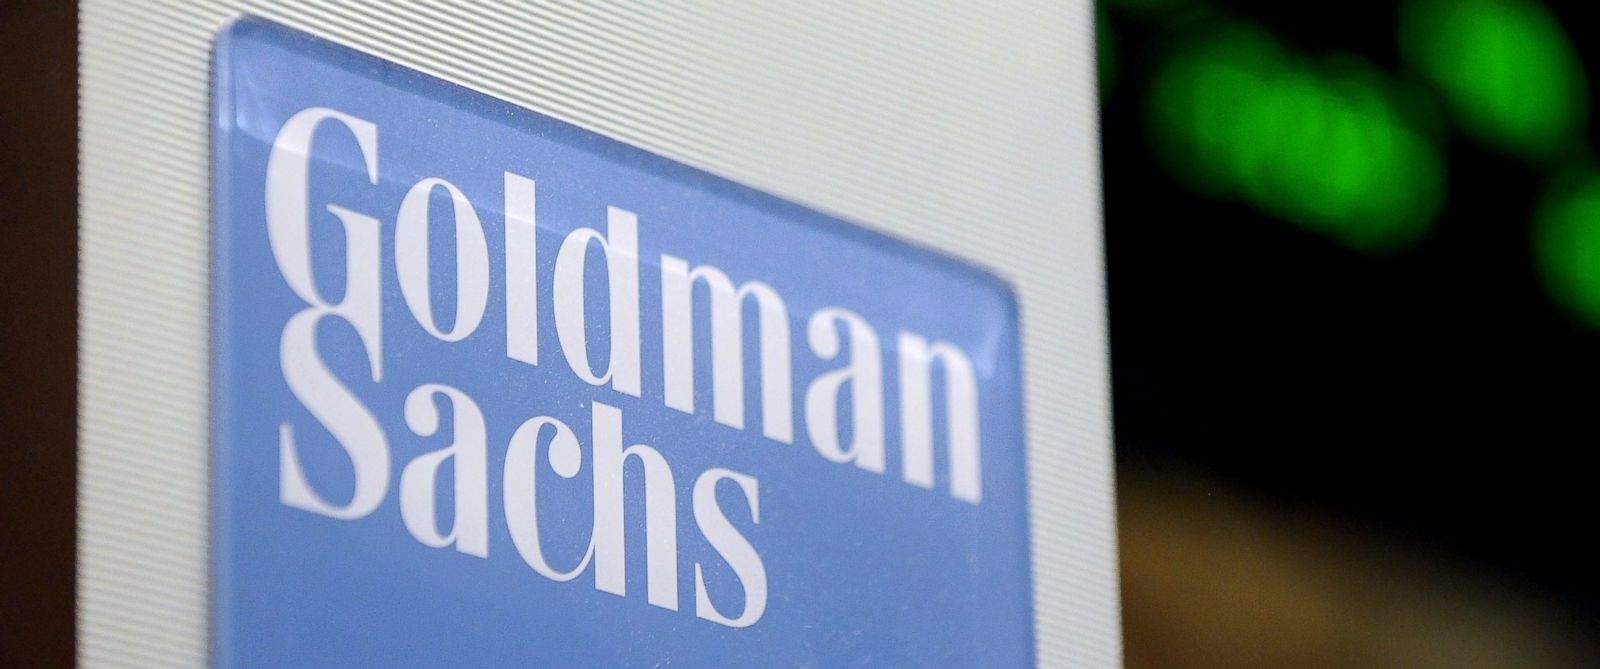 Image result for Goldman Sachs, sign, photos